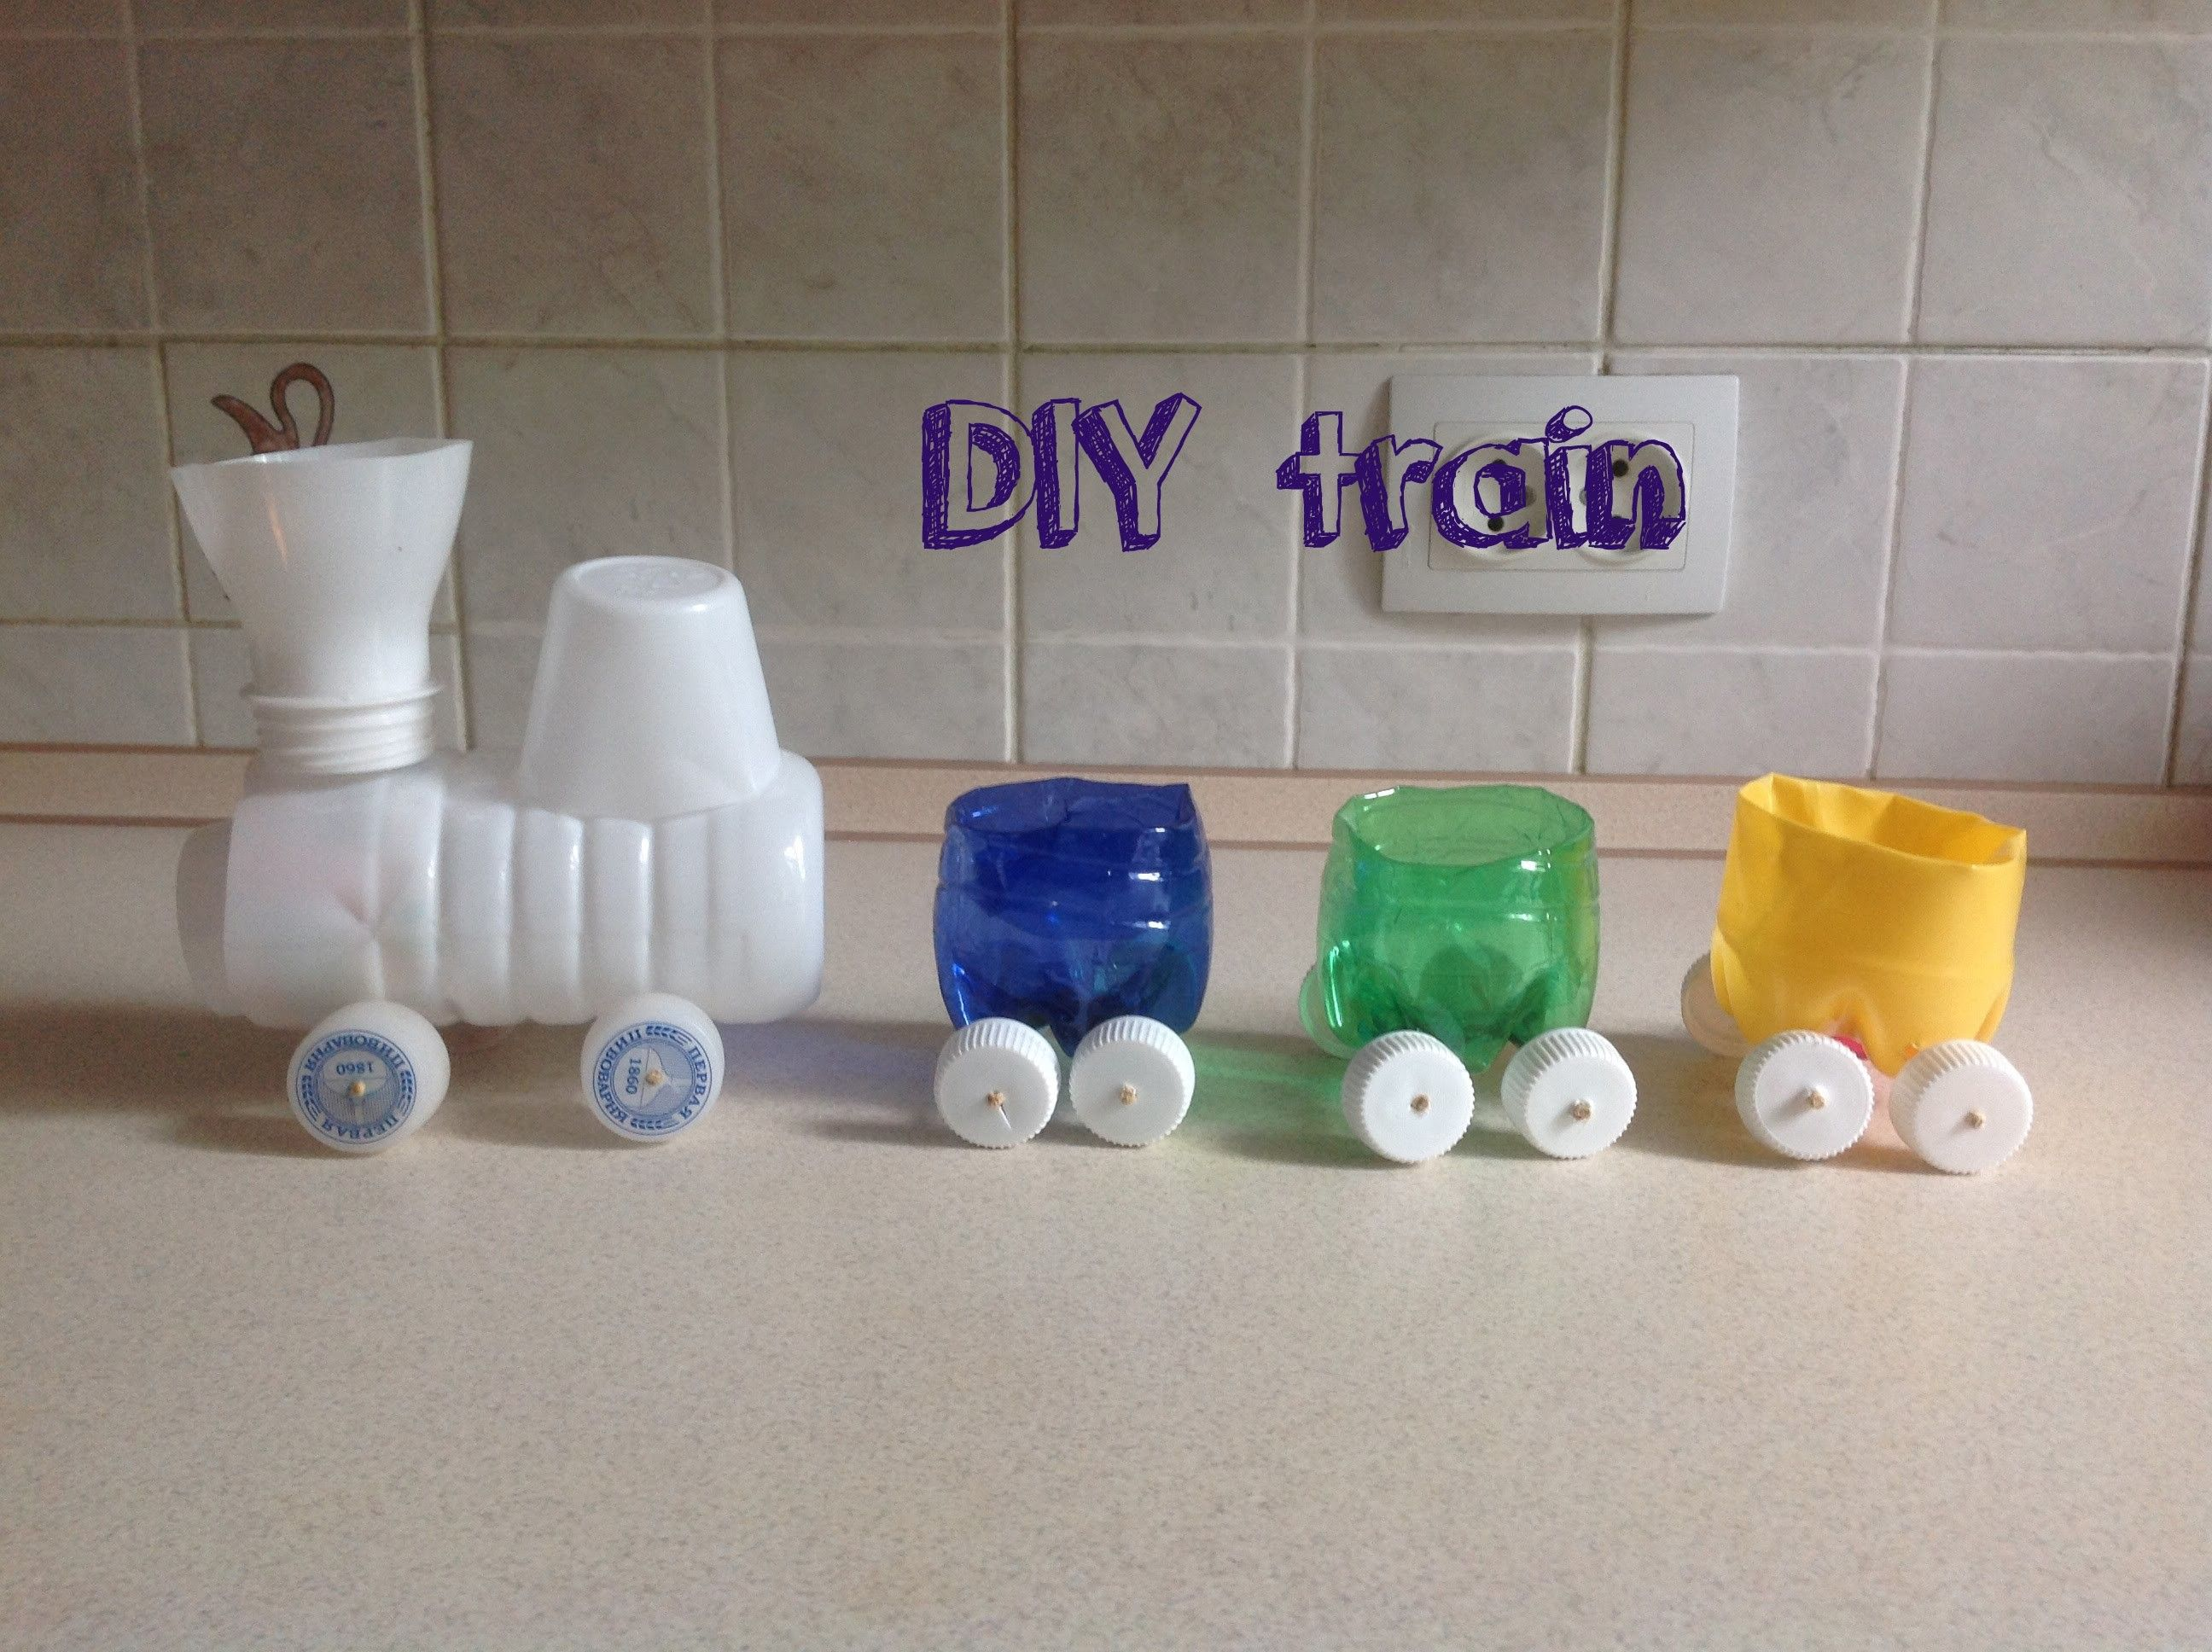 Train diy plastic bottles crafts for kids plastic for Diy plastic bottle